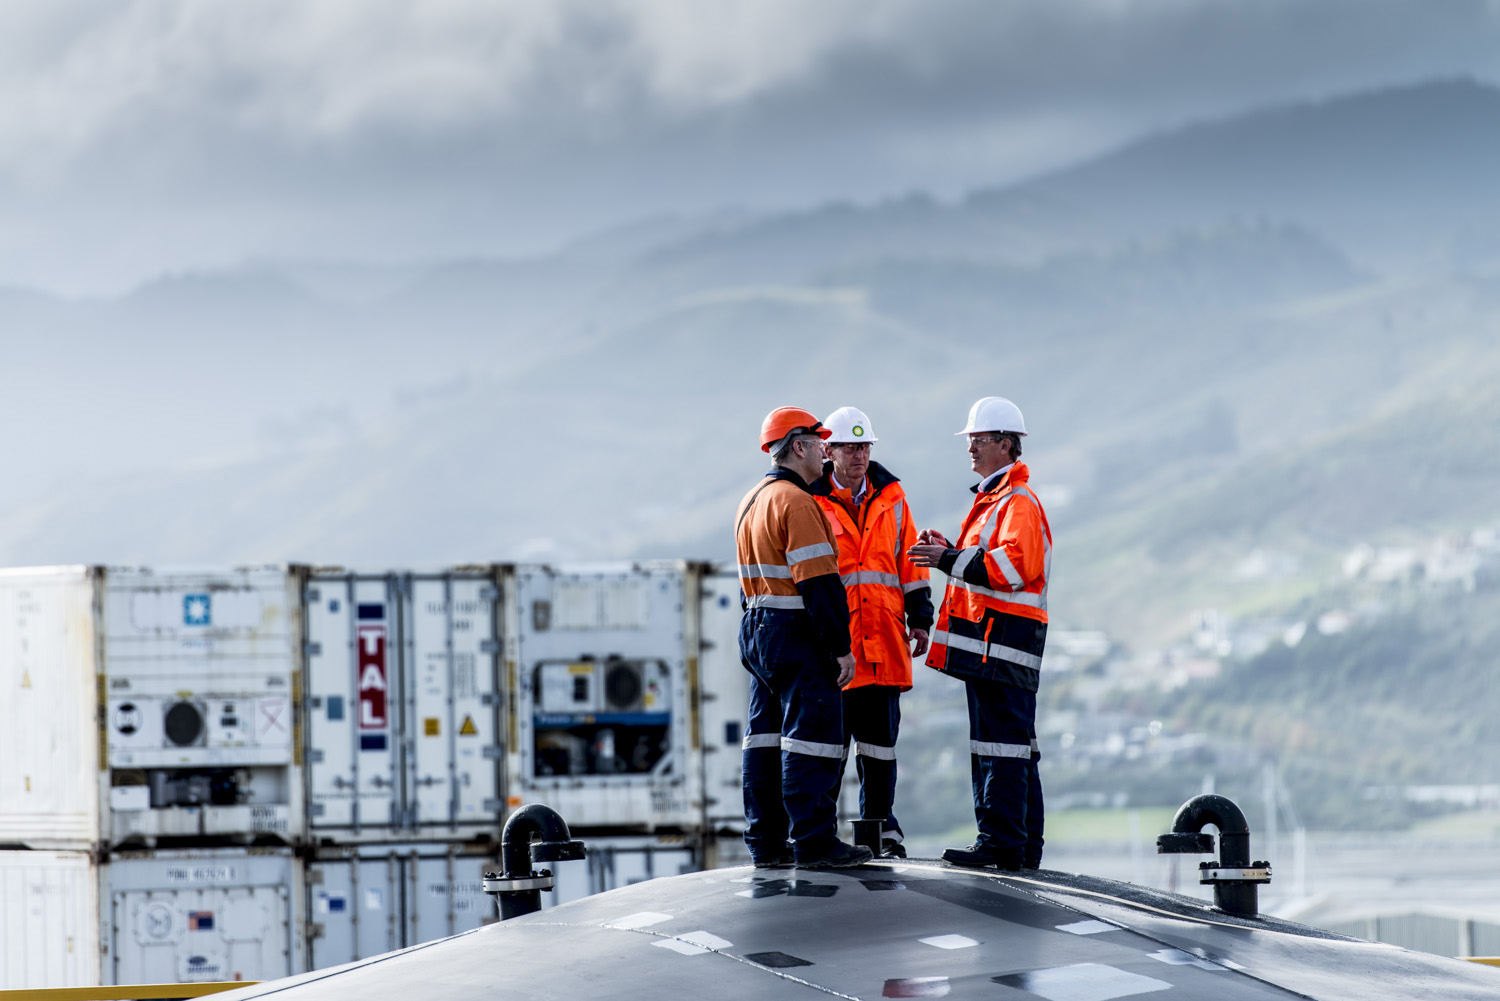 image of AARONTAIT COPYRIGHTED 2014 214c CUSTOMERS MEETING INSPECTION VIEW WEATHER ENVIRONMENT  RESEARCH EXPLORATION INDUSTRIAL PHOTOGRAPHER MANUFACTURING EPIC AUSTRALIA ASIA PACIFIC SUCCESS TECHNOLOGY SCIENCE